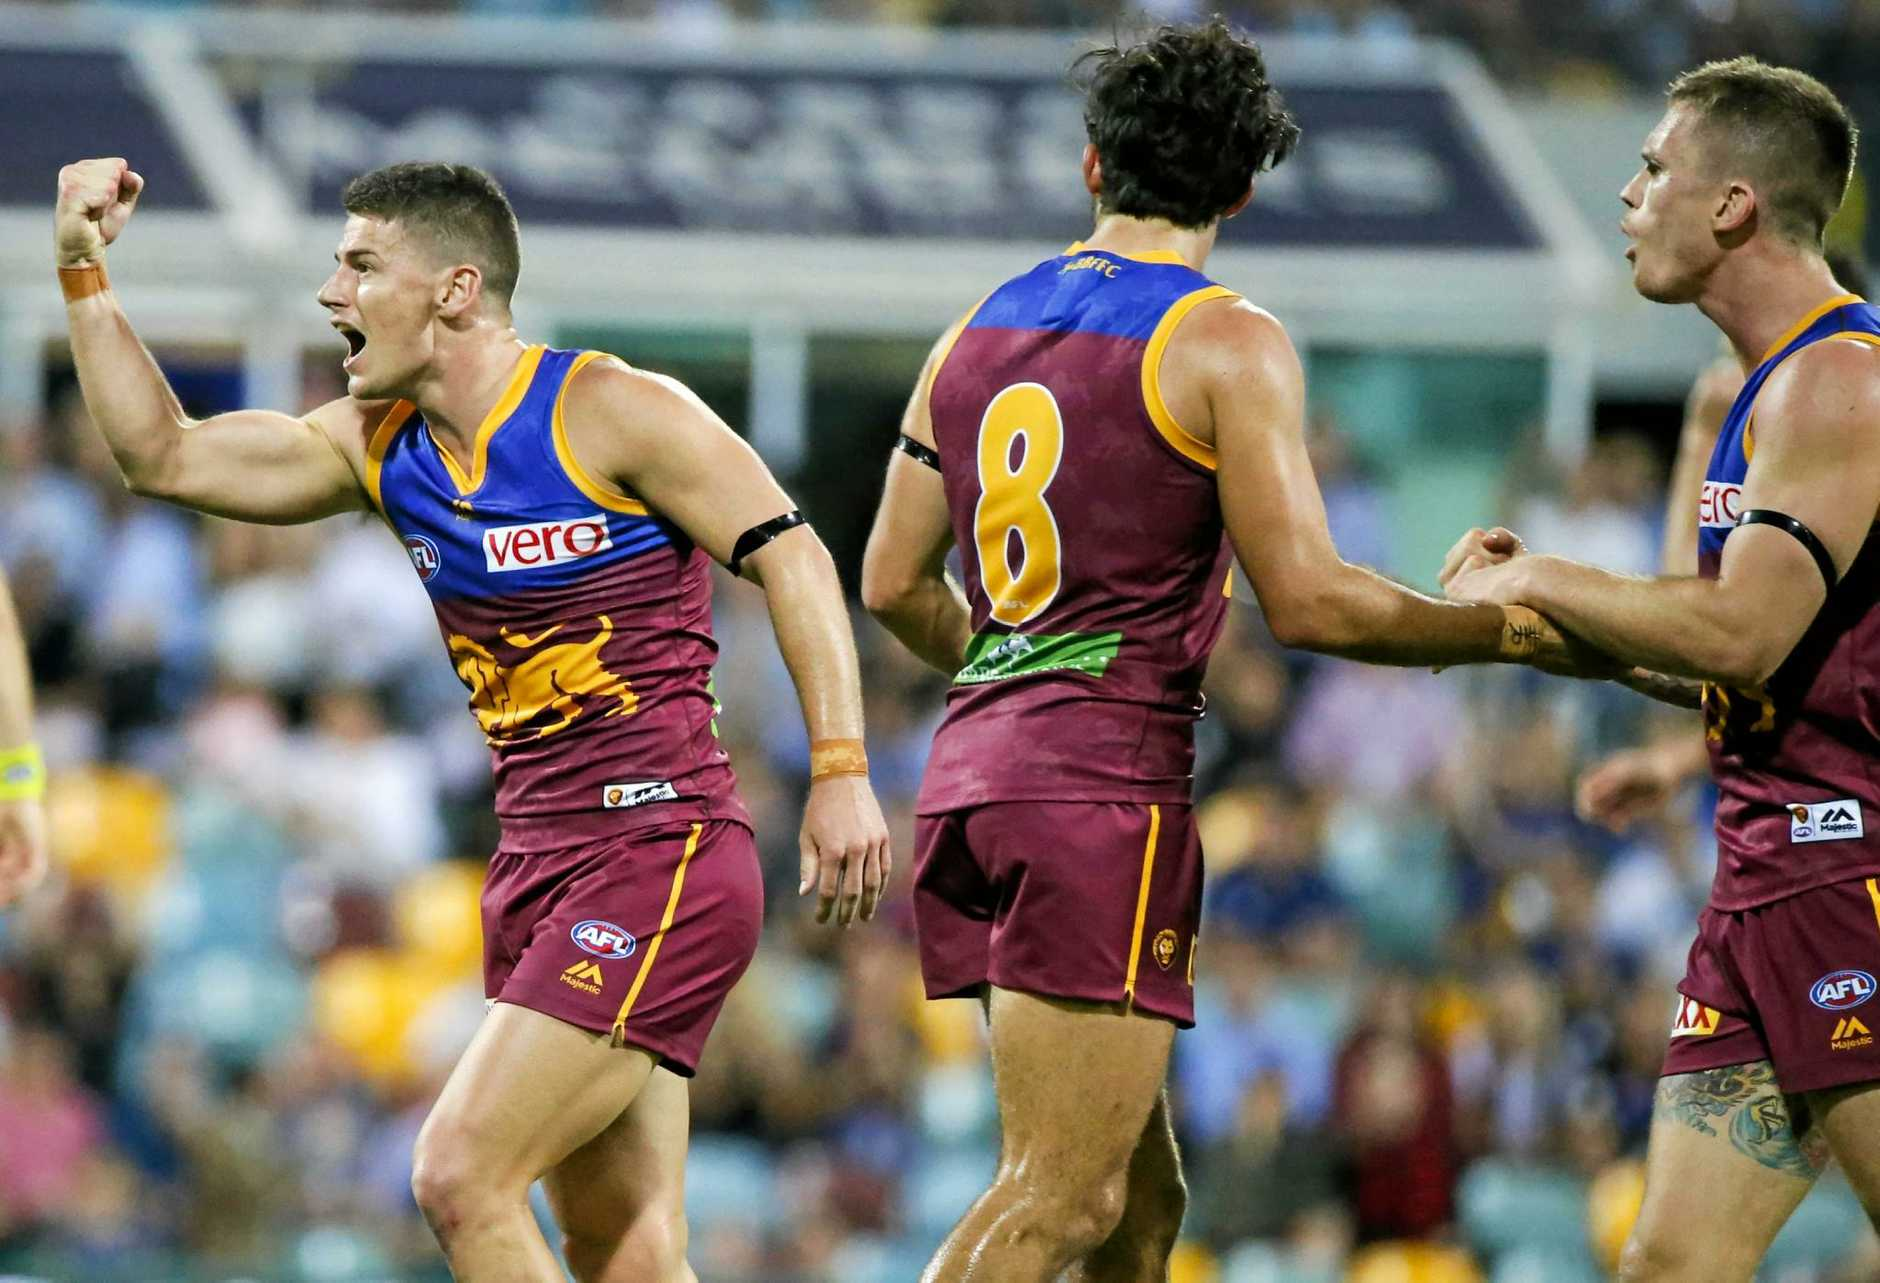 Dayne Zorko of the Lions celebrates after scoring a goal during the Round 2 AFL match between the Brisbane Lions and the Essendon Bombers at the Gabba in Brisbane, Saturday, April 1, 2017. (AAP Image/Glenn Hunt) NO ARCHIVING, EDITORIAL USE ONLY